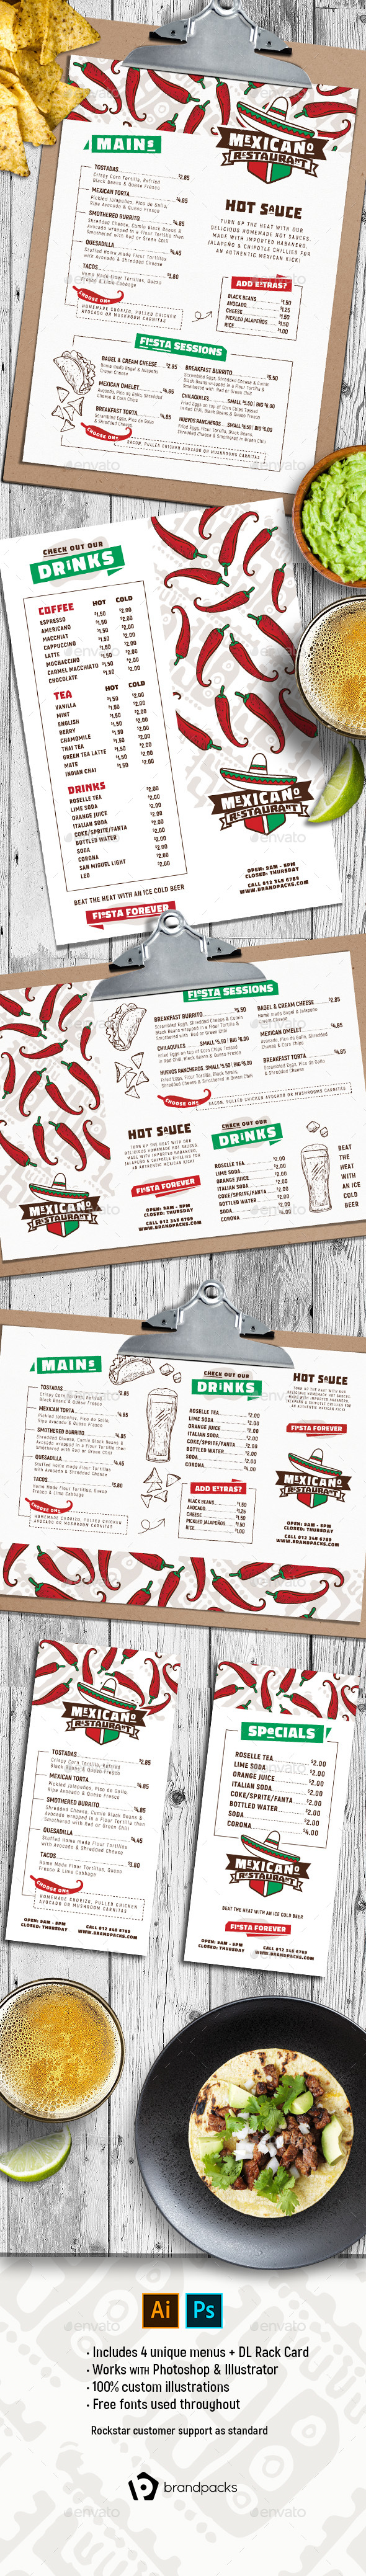 Mexican Menu Templates - Food Menus Print Templates